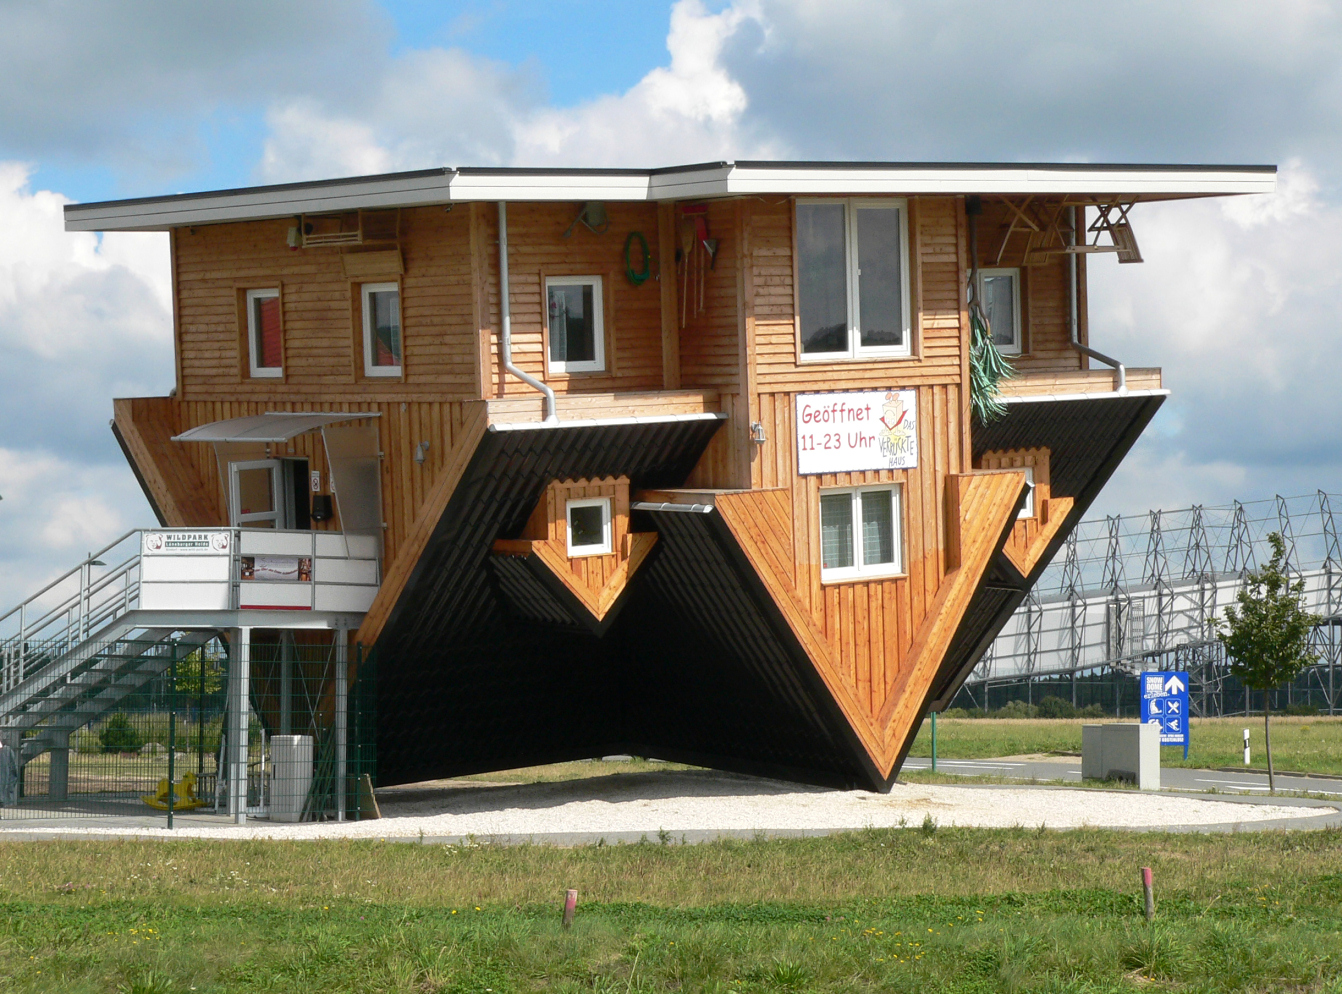 The amazing house in germany that is upside down Design home free